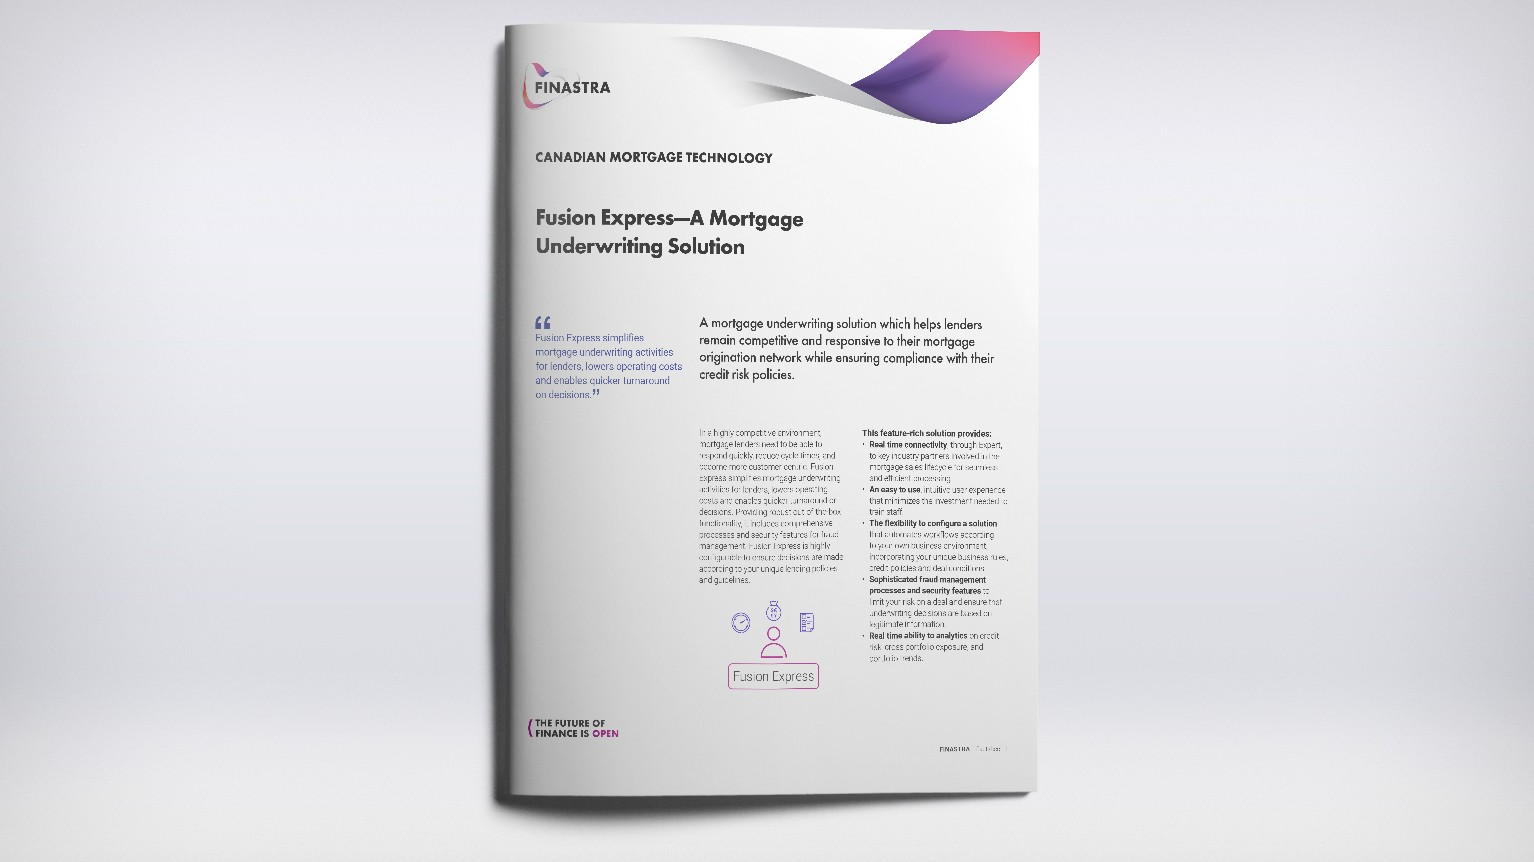 Fusion Express—A Mortgage Underwriting Solution